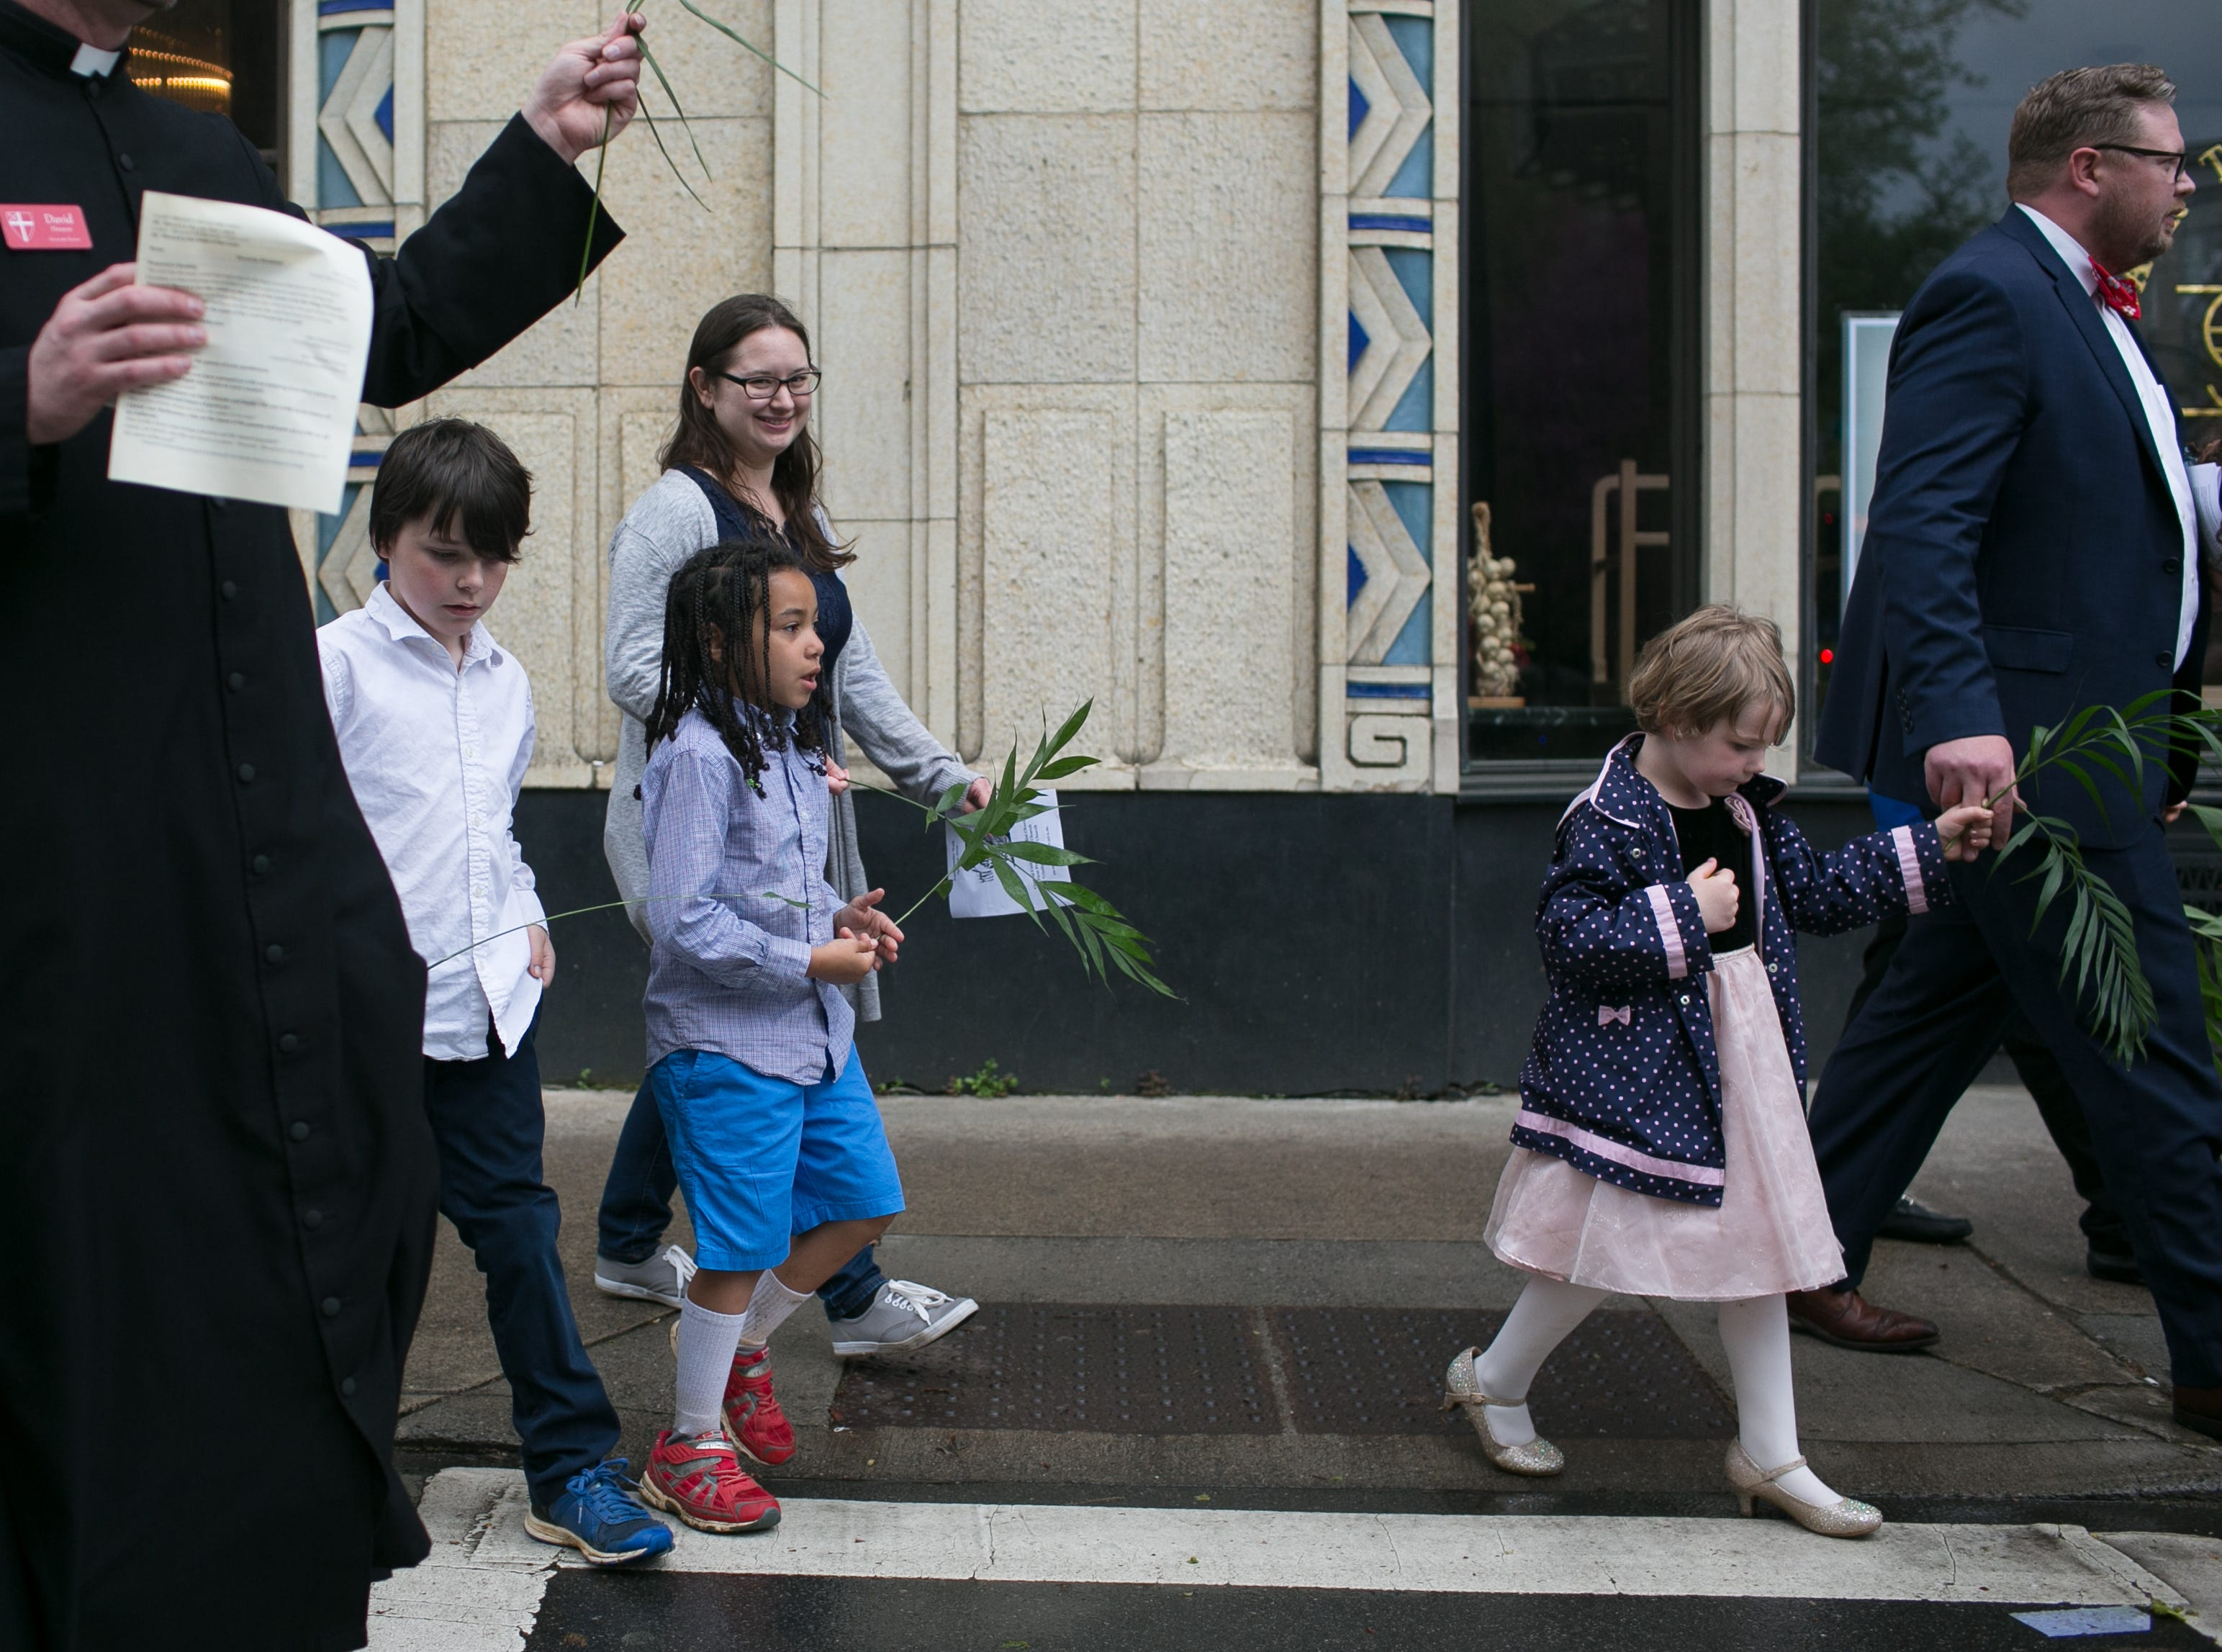 Central United Methodist Church held their annual Palm Sunday procession to Pritchard Park on April 14, 2019.  Members of First Presbyterian and Trinity Episcopal Church joined members of Central United Methodist for the procession, which was held between the 8:45 a.m. & 10:55 a.m. services.